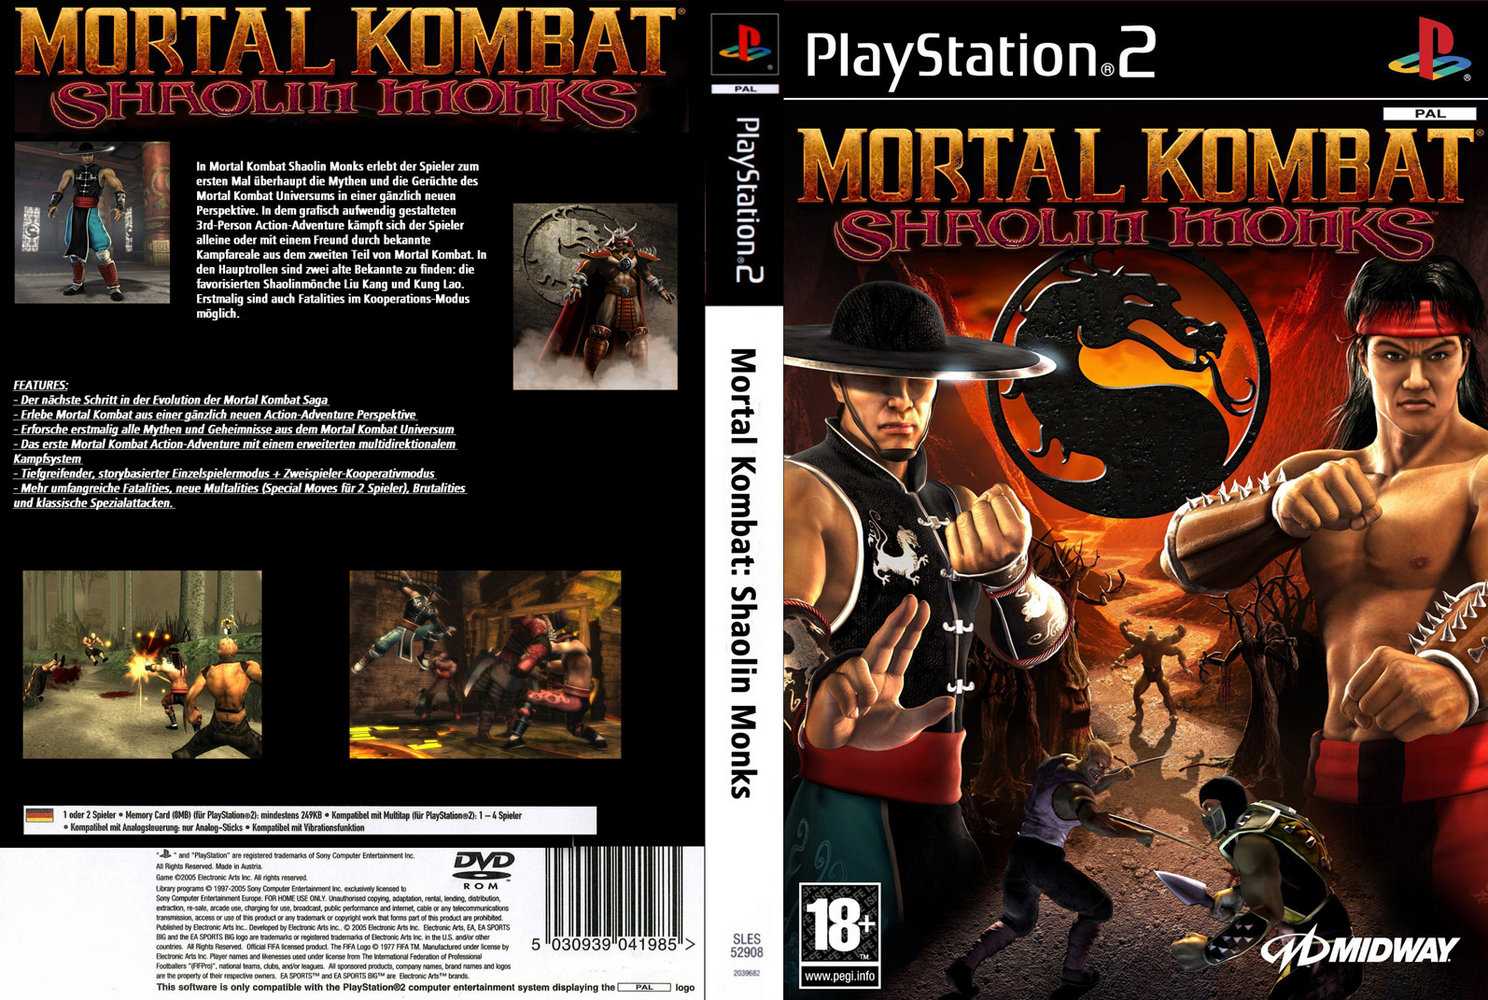 mortal kombat - shaolin monks (europe) (en,fr,de,es,it) iso < ps2